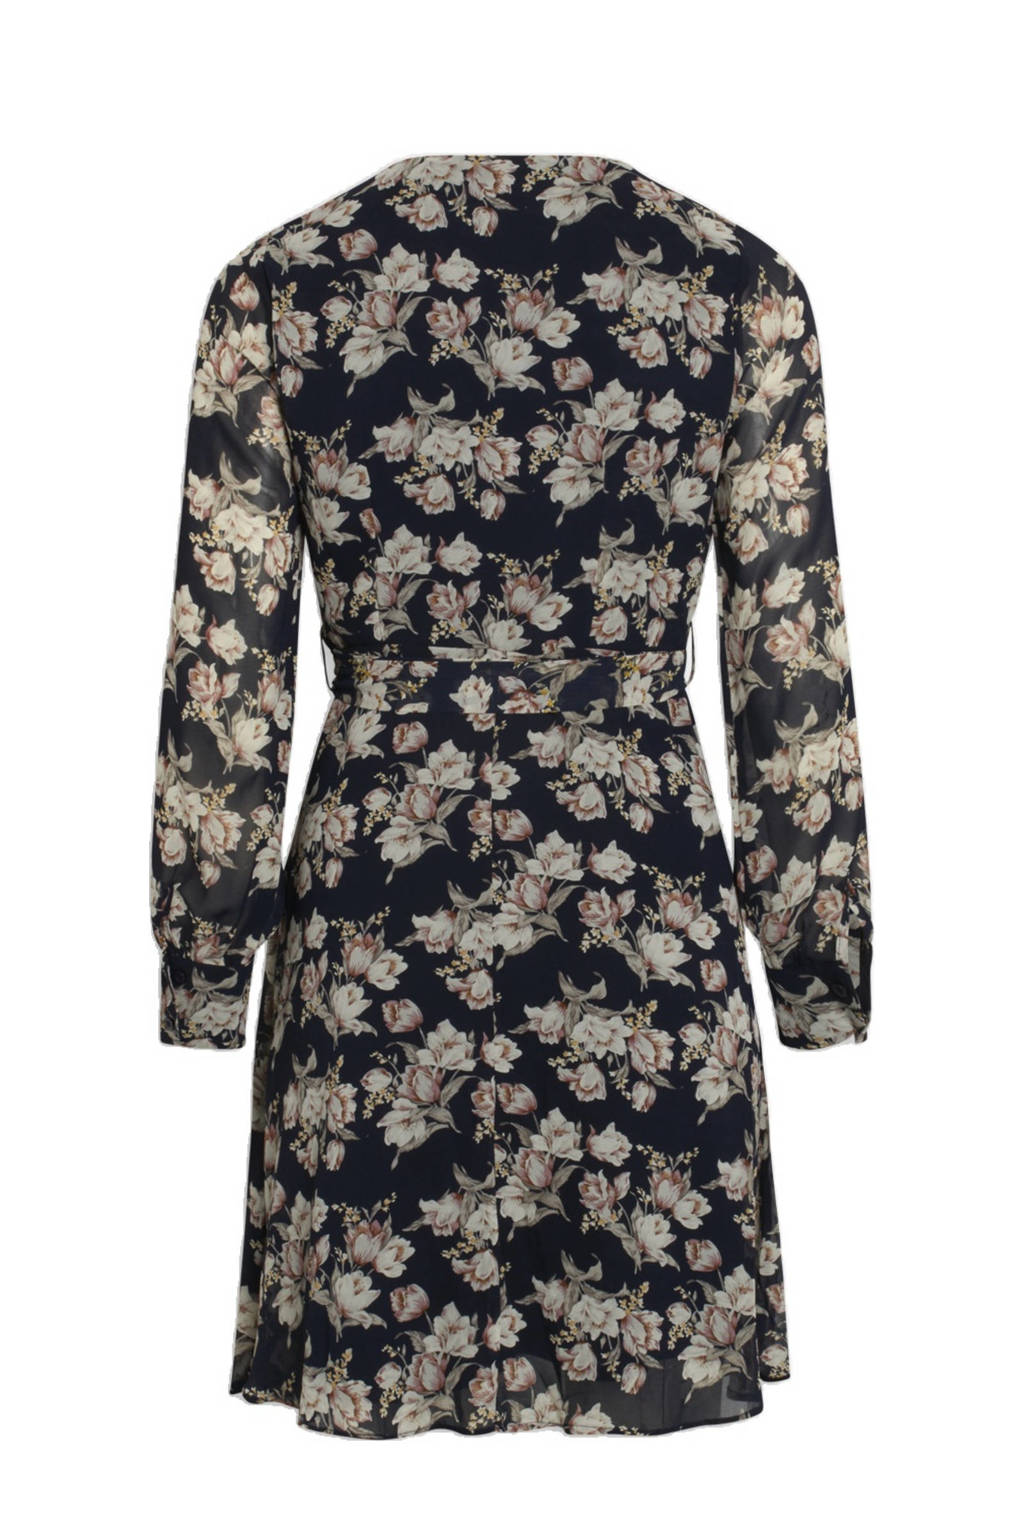 SisterS Point jurk met all over print donkerblauw, Donkerblauw